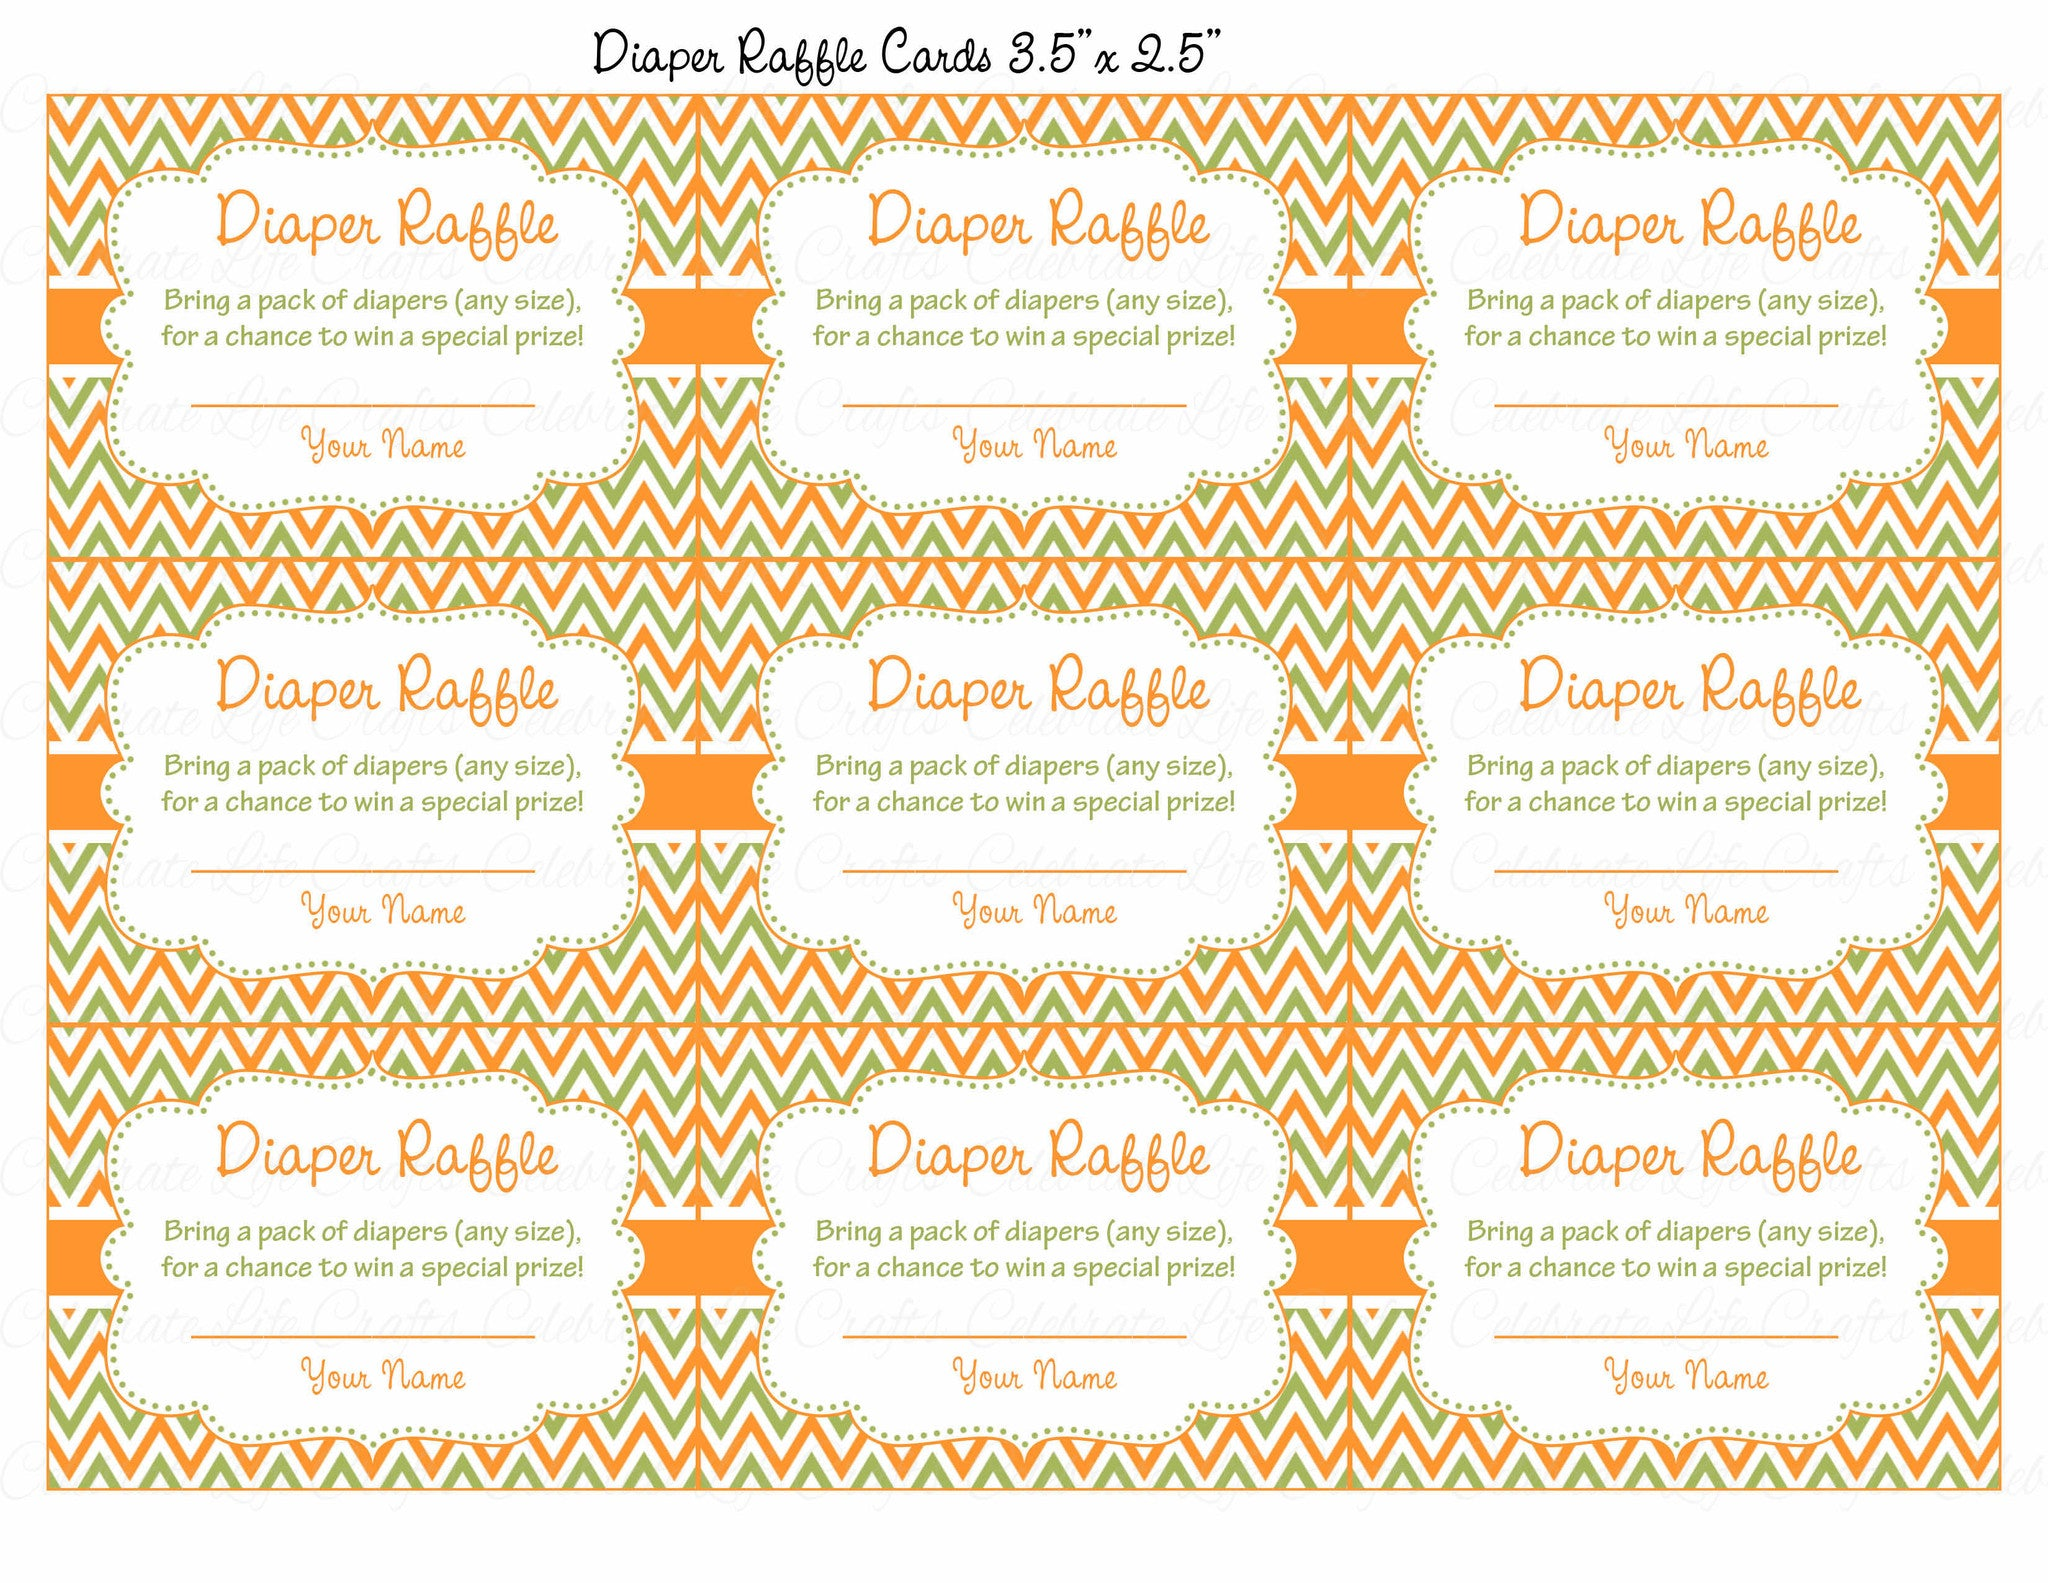 photograph about Diaper Raffle Printable named Diaper Raffle Tickets - Printable Down load - Orange Eco-friendly Kid Shower Invitation Inserts - B21001